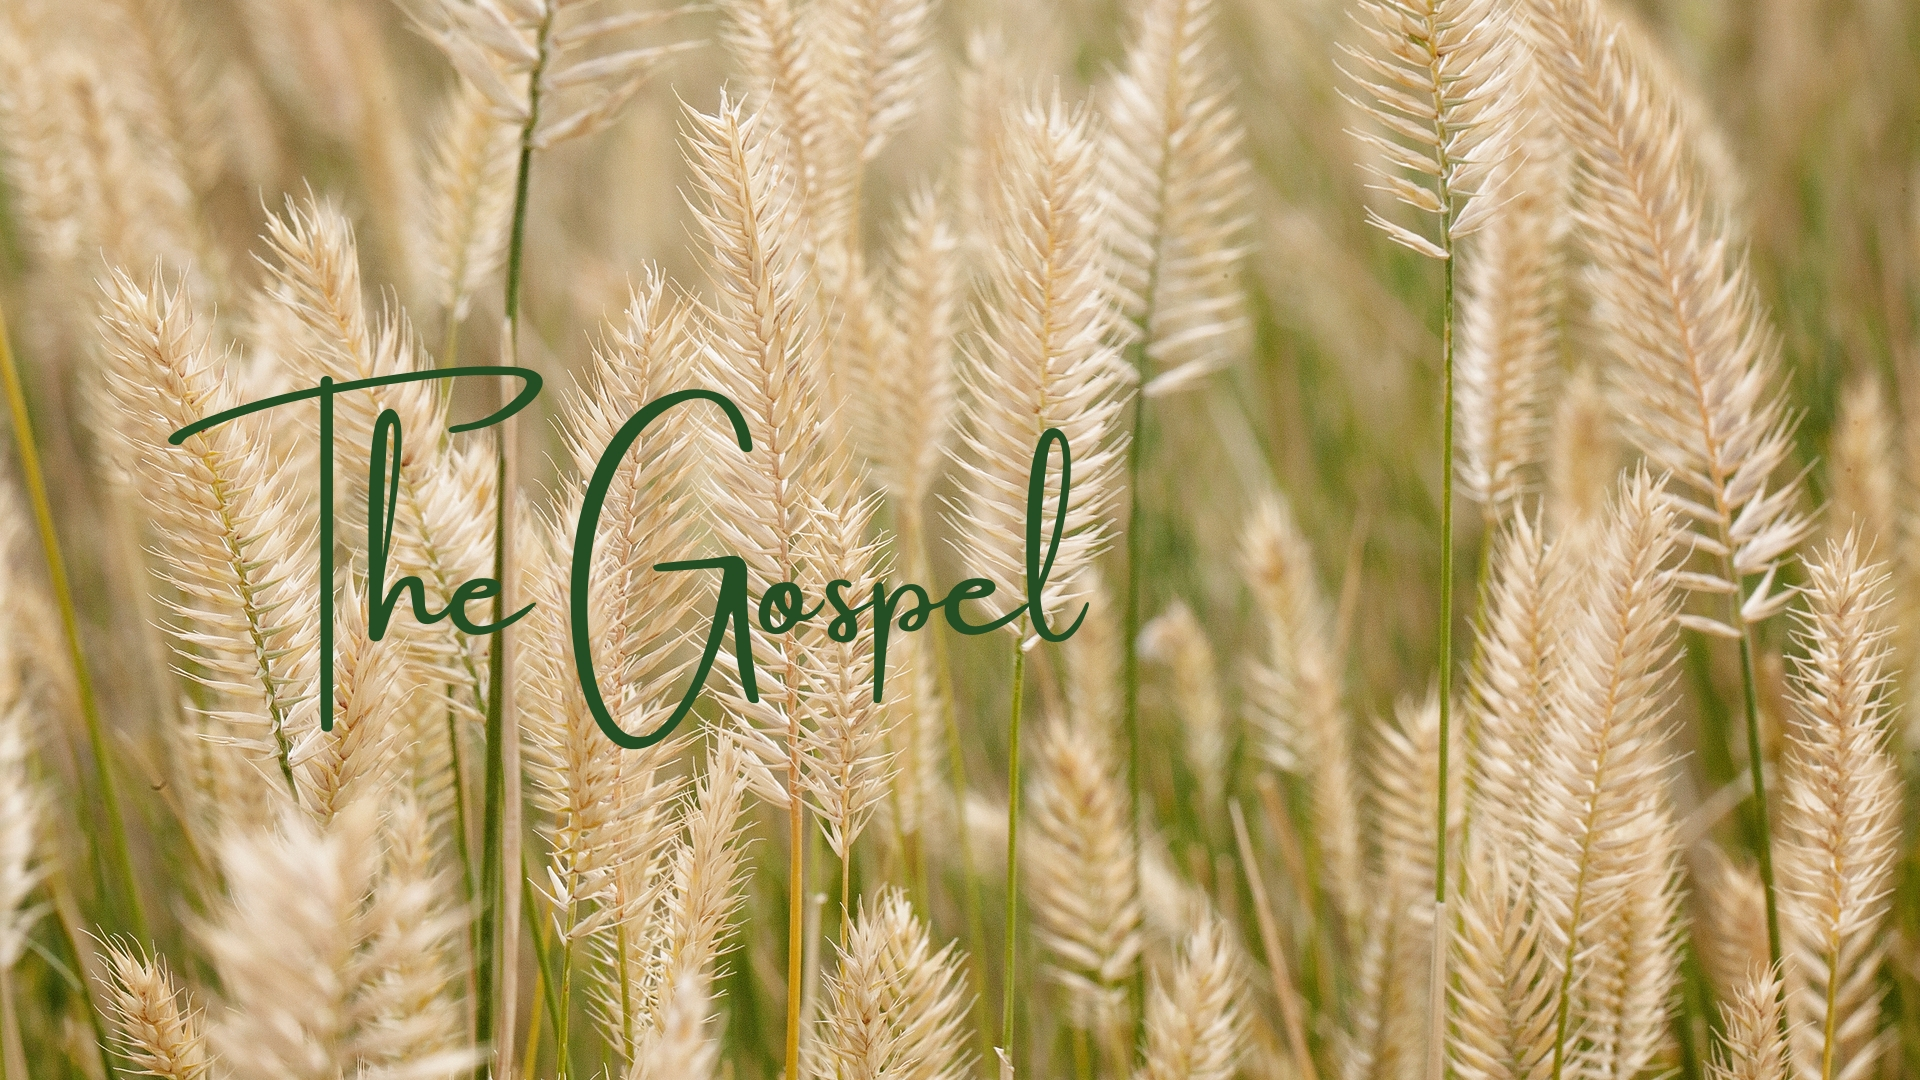 - The Need for the Gospel (May 19, 2019)The Basics of the Gospel (May 26, 2019)How to Win Against Sin (June 23, 2019)Sin Forever Gone (June 30, 2019)